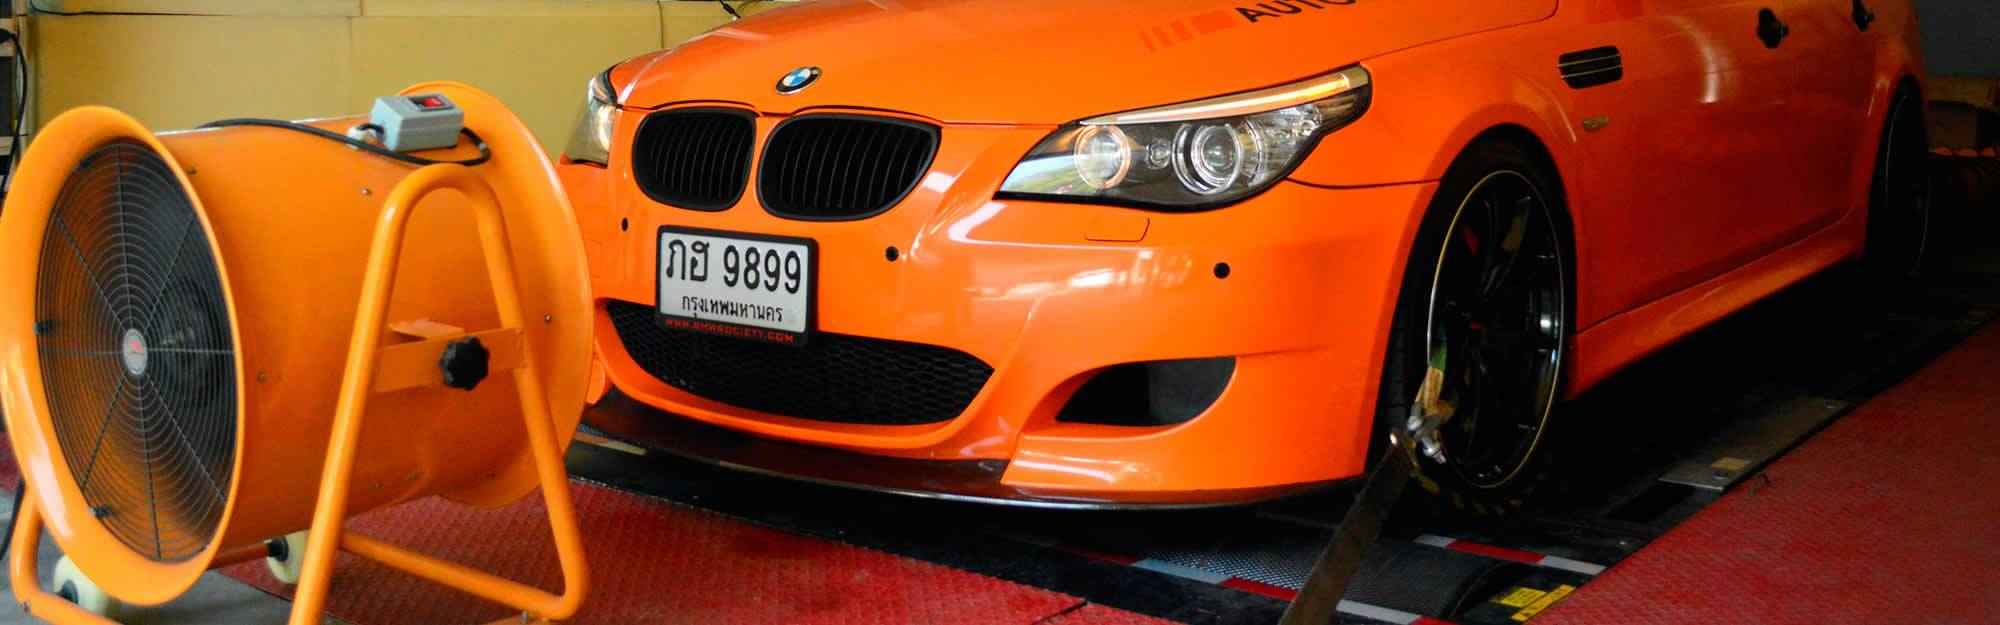 Chip Tuning on BMW at ECU Thailand Bangkok